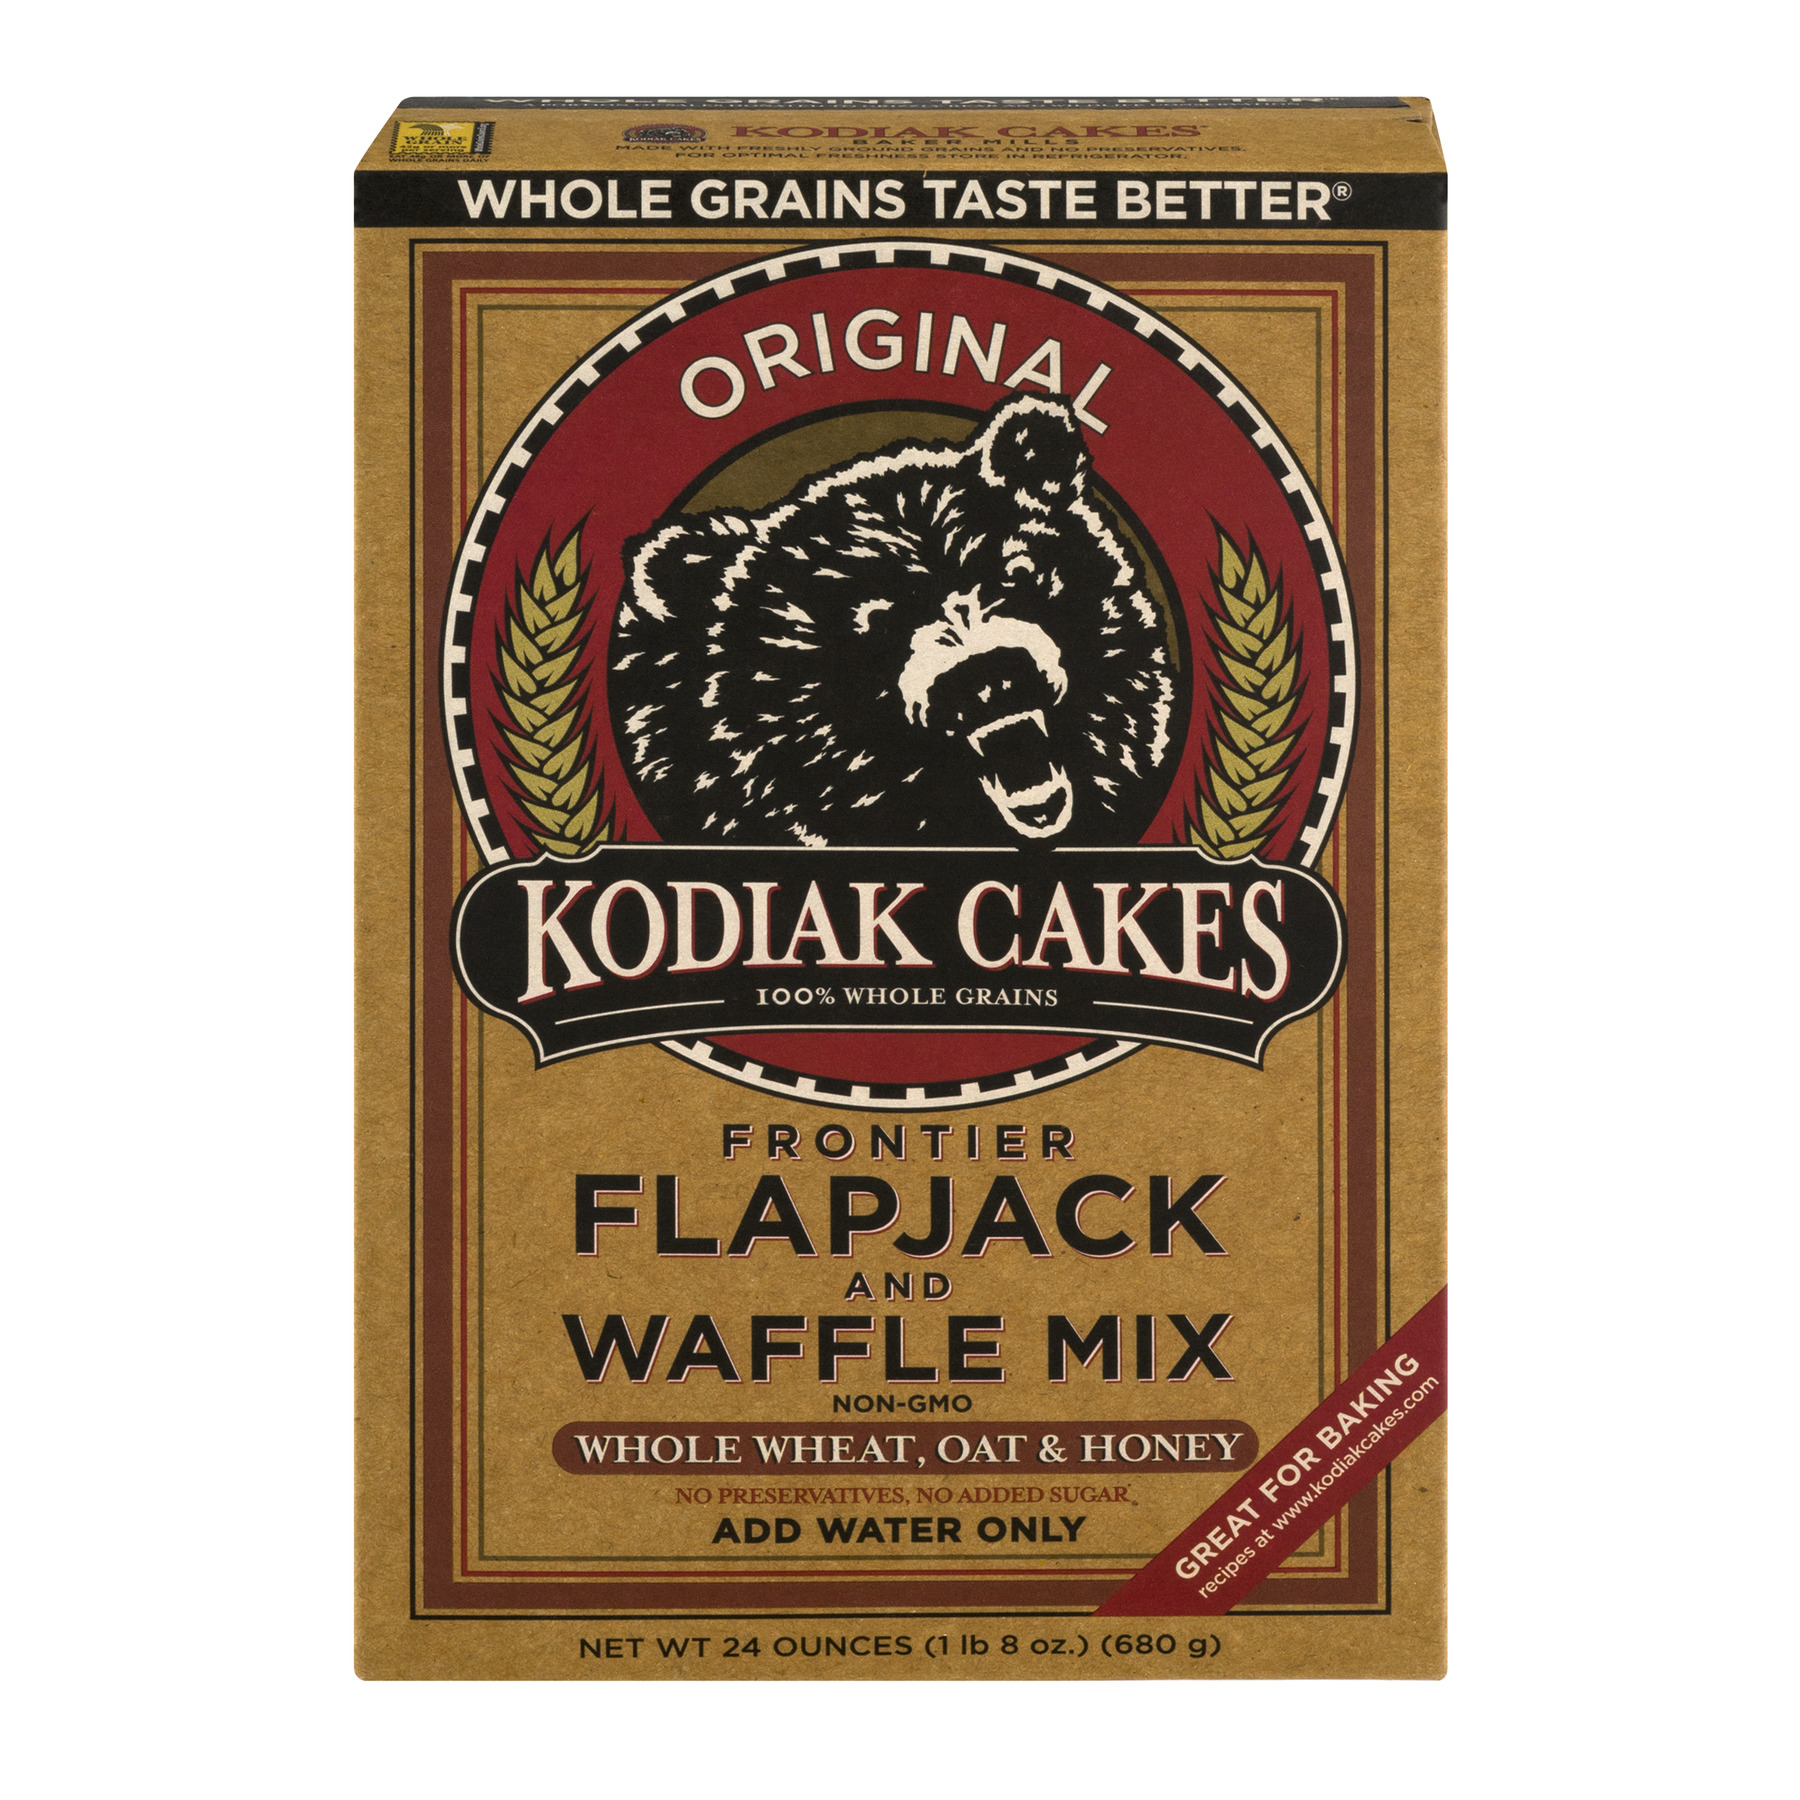 Kodiak Cakes Frontier Flapjack And Waffle Mix Original, 24.0 OZ